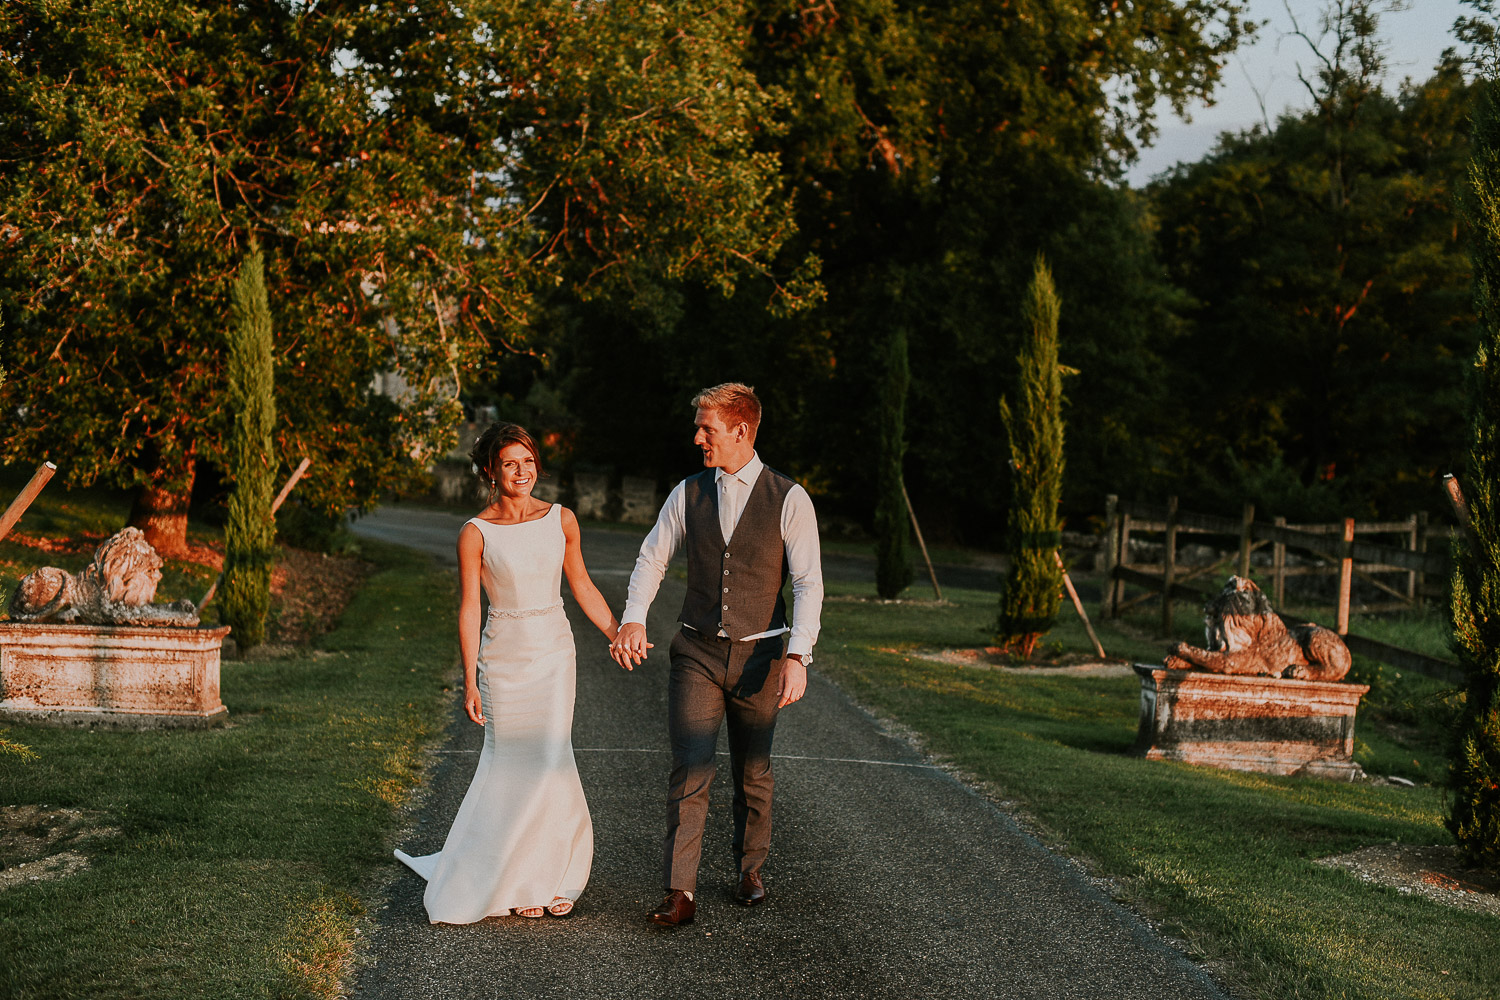 chateau_de_lisse_gers_gascony_south_west_france_family_wedding_katy_webb_photography_UK89